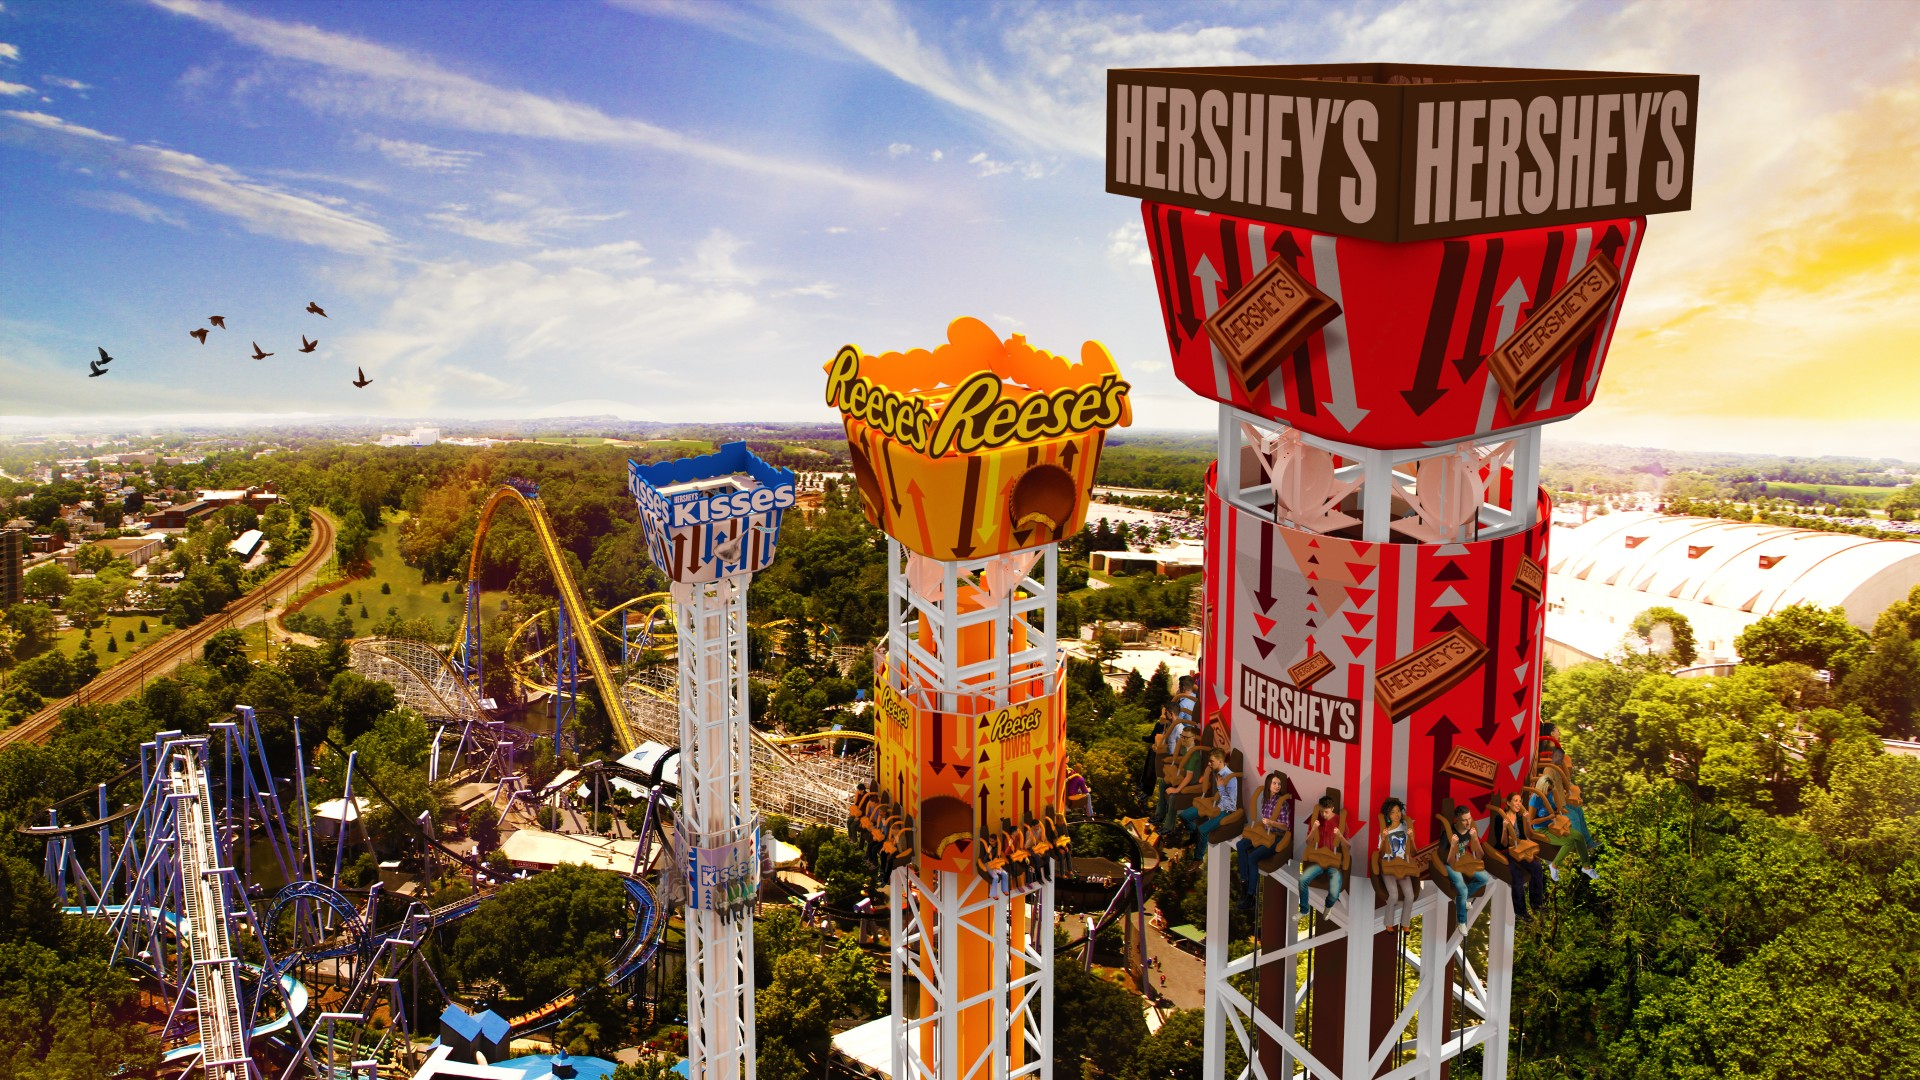 Hersheypark Announces Hershey Triple Tower Opening In 2017